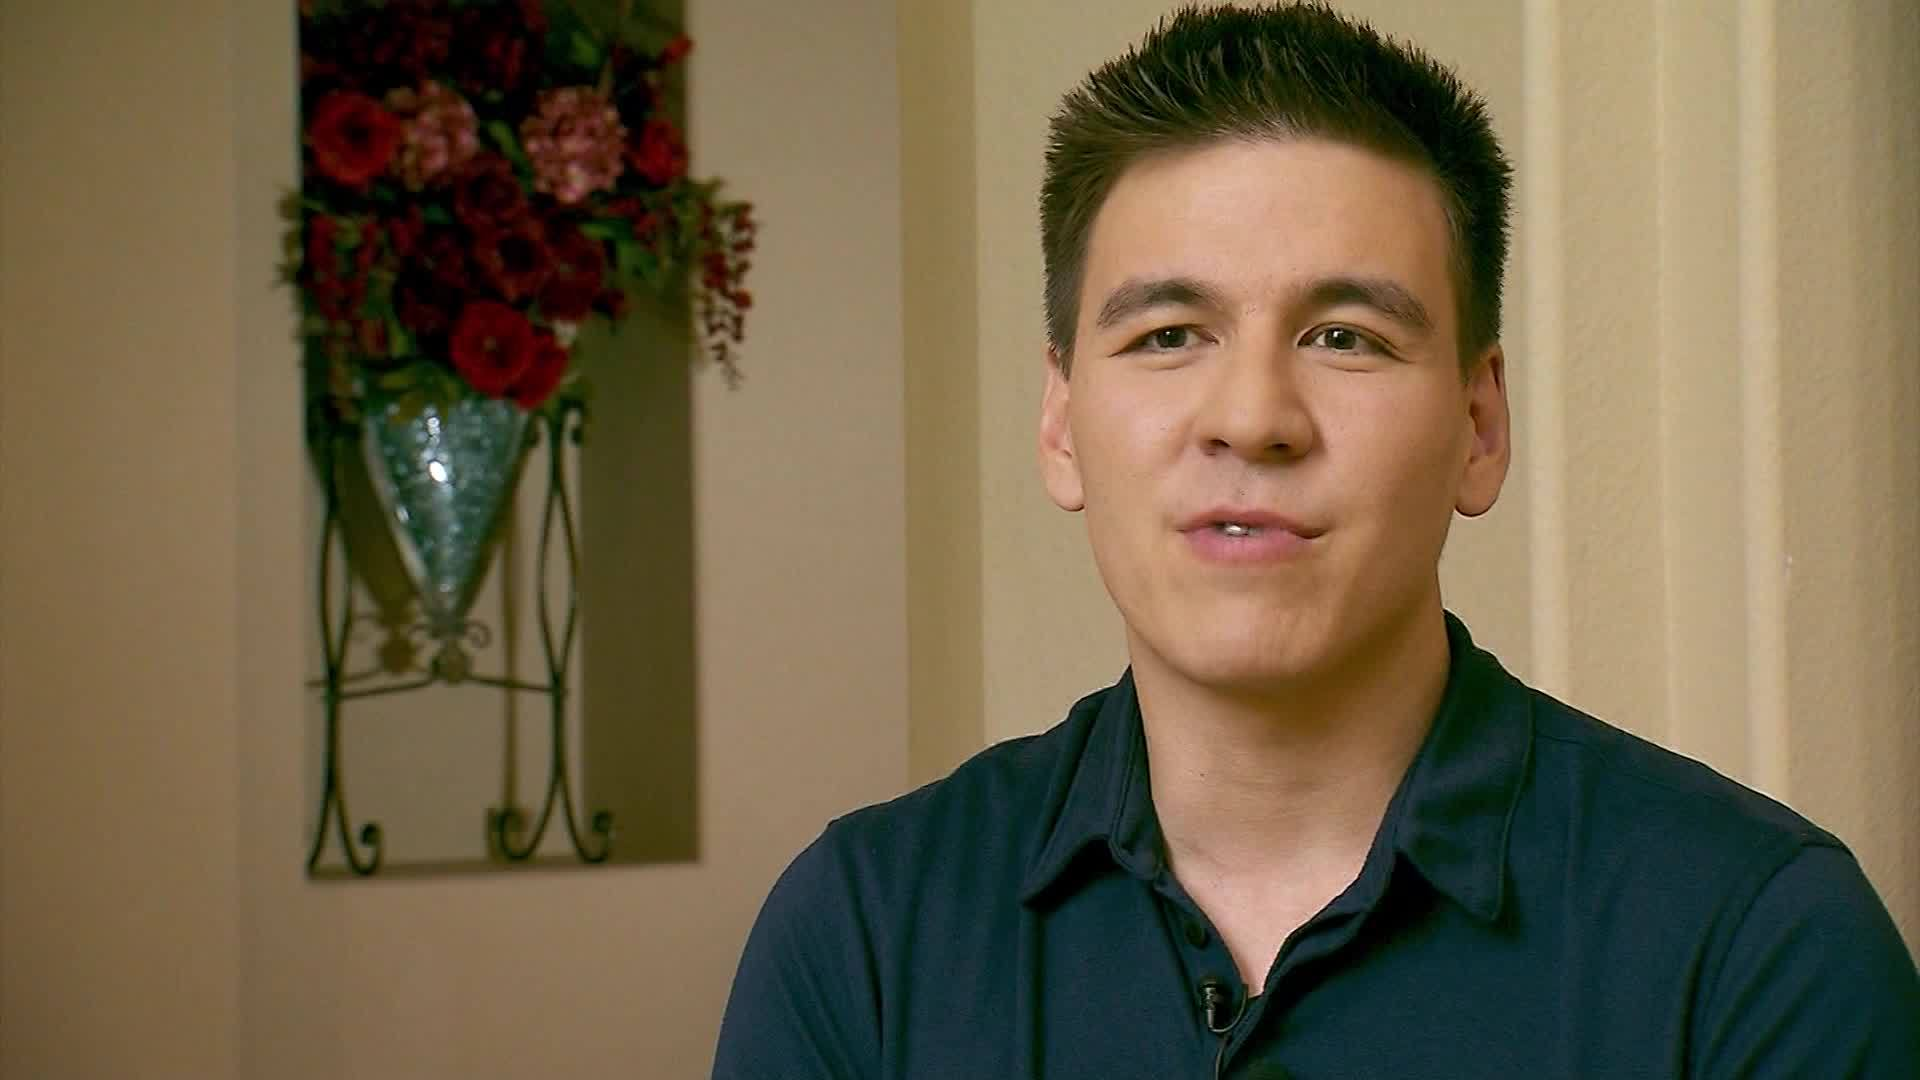 Holzhauer donates to cancer walk in Trebek's name